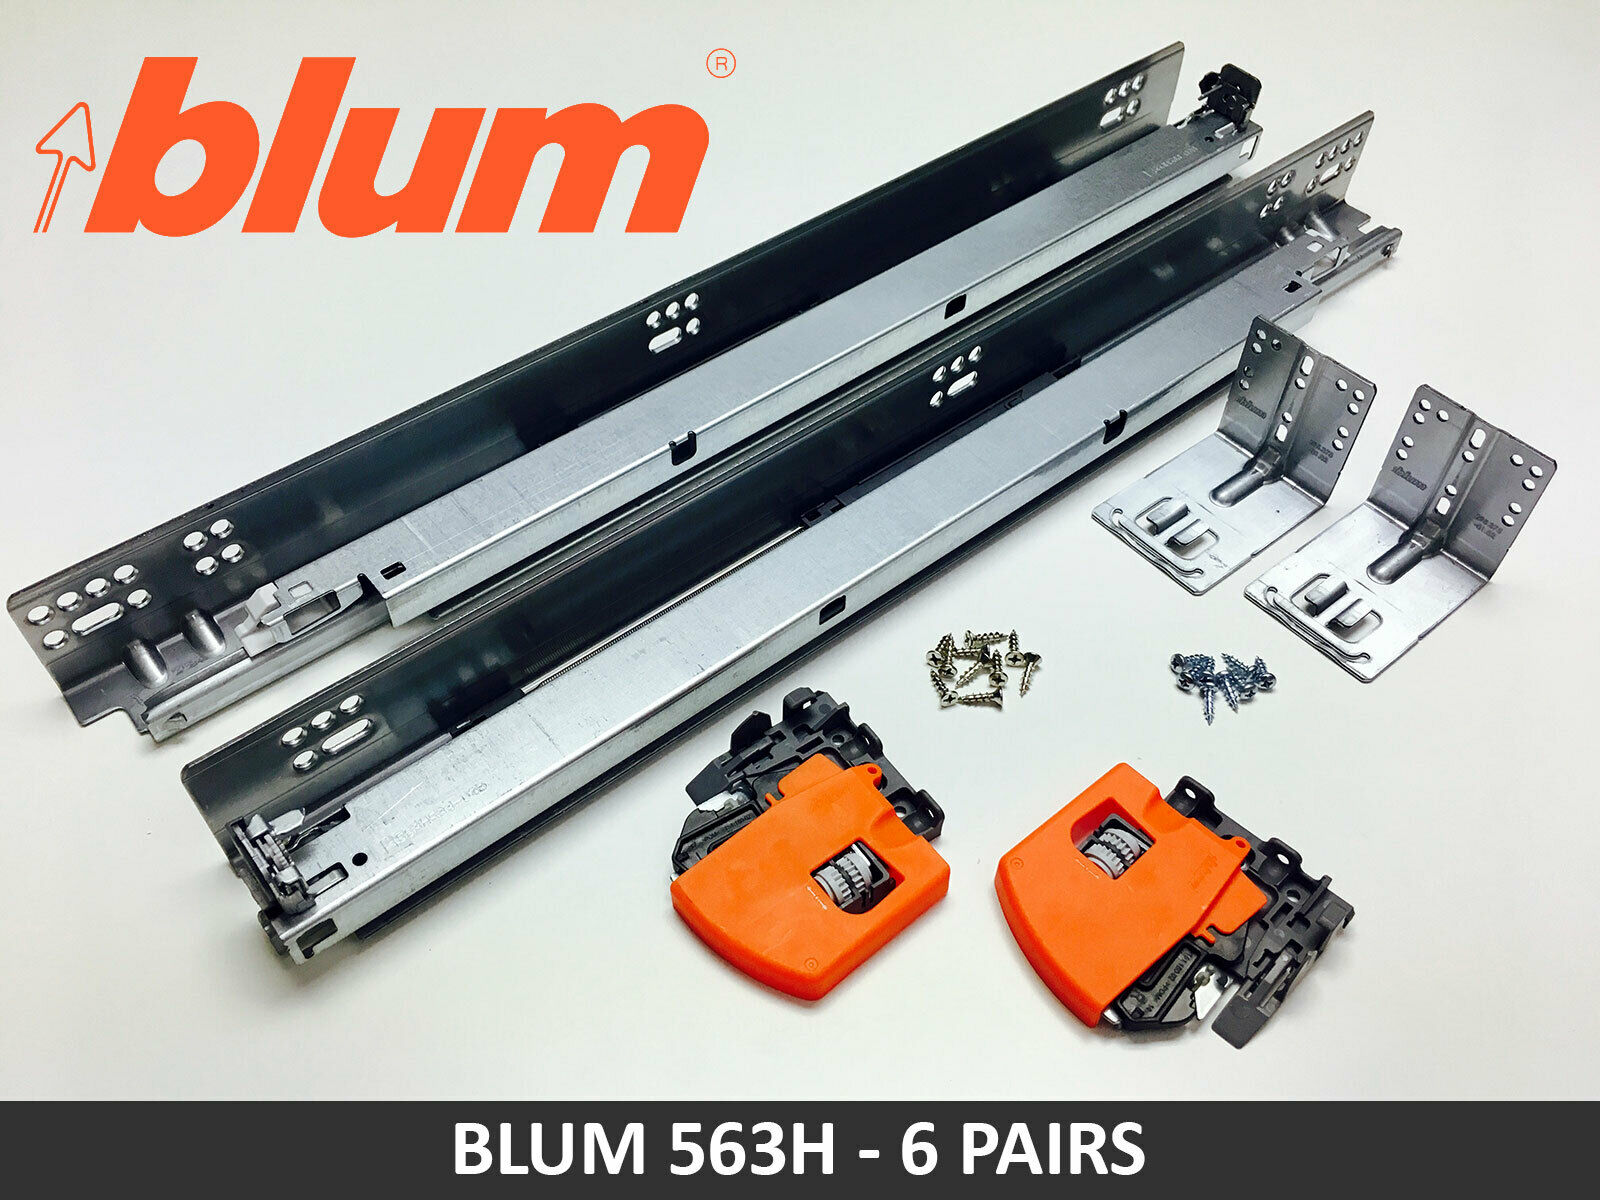 BLUM TANDEM PLUS BLUMOTION UNDERMOUNT SLIDE 6 SET THE NEXT GEN SOFT CLOSE 563H